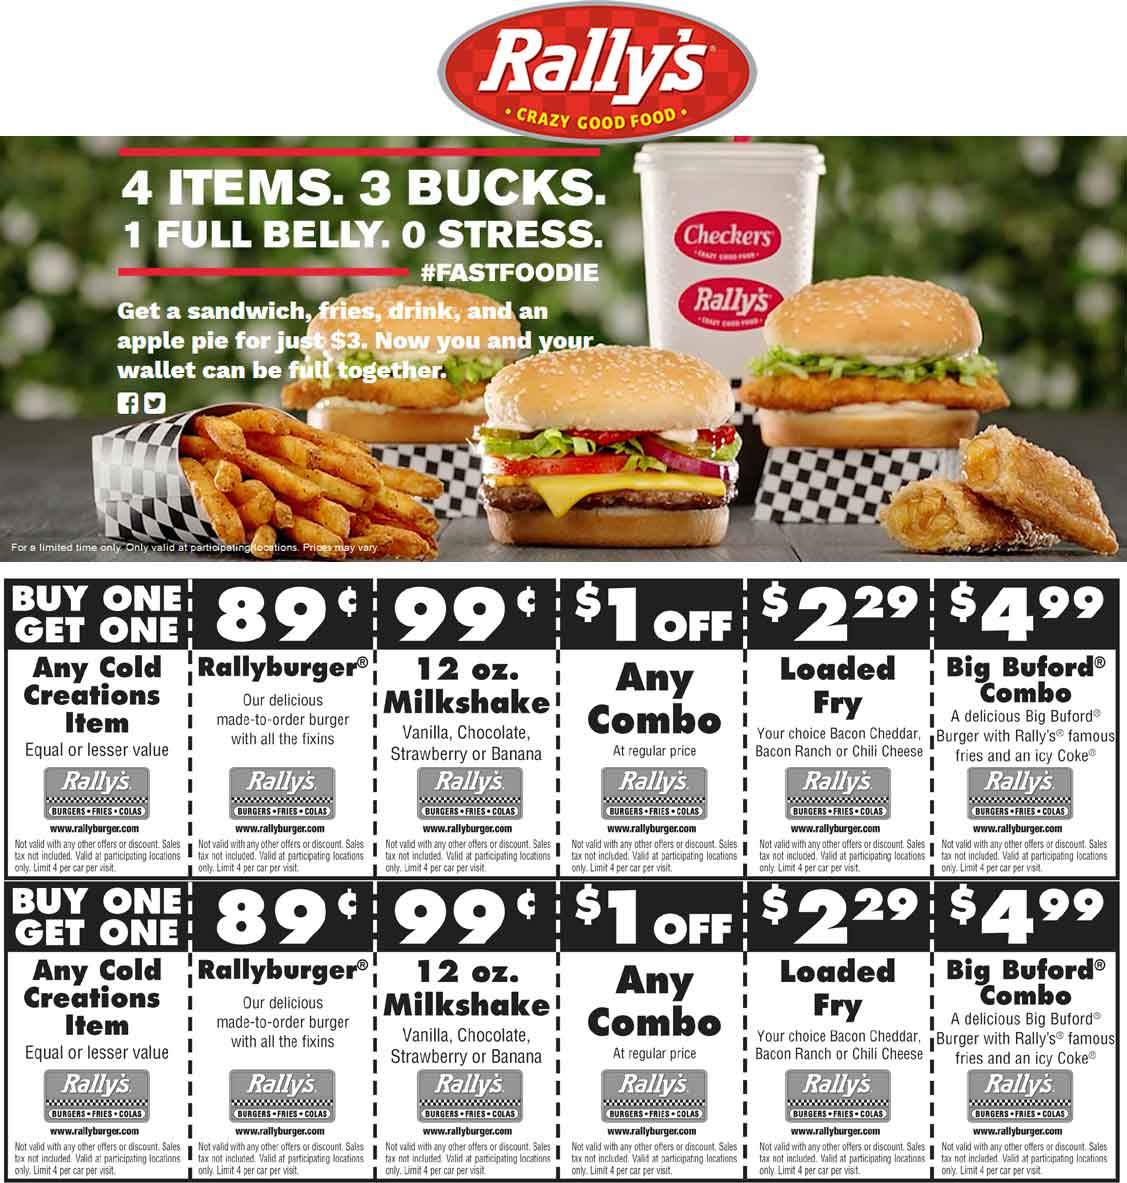 Rallys Coupon July 2017 Sandwich + fries + drink + pie = $3 & more at Rallys restaurants